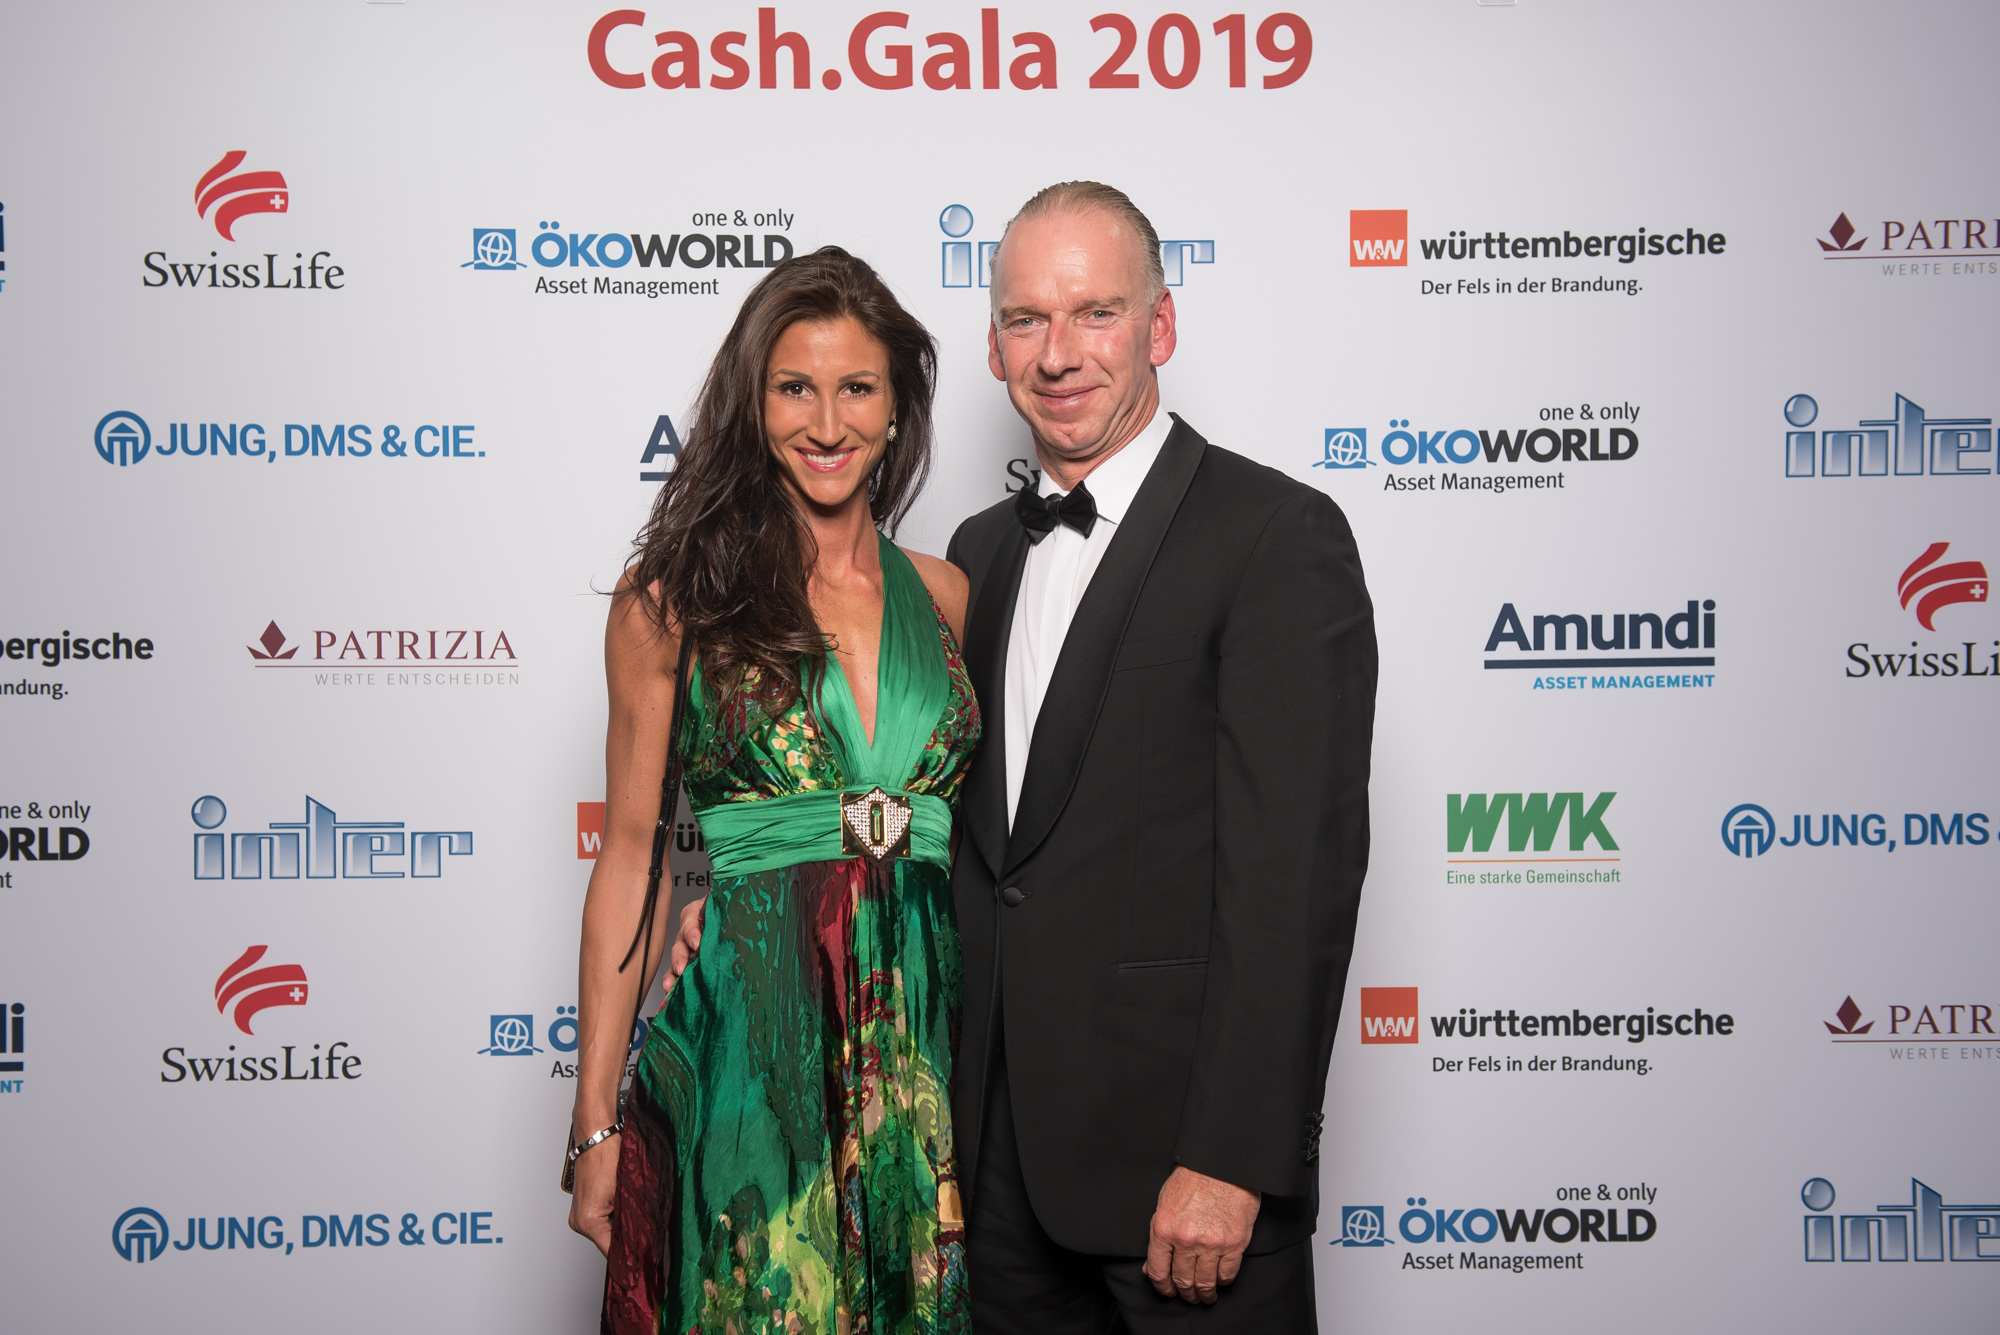 CashGala 2019 0033 AM DSC7038 in Cash.Gala 2019